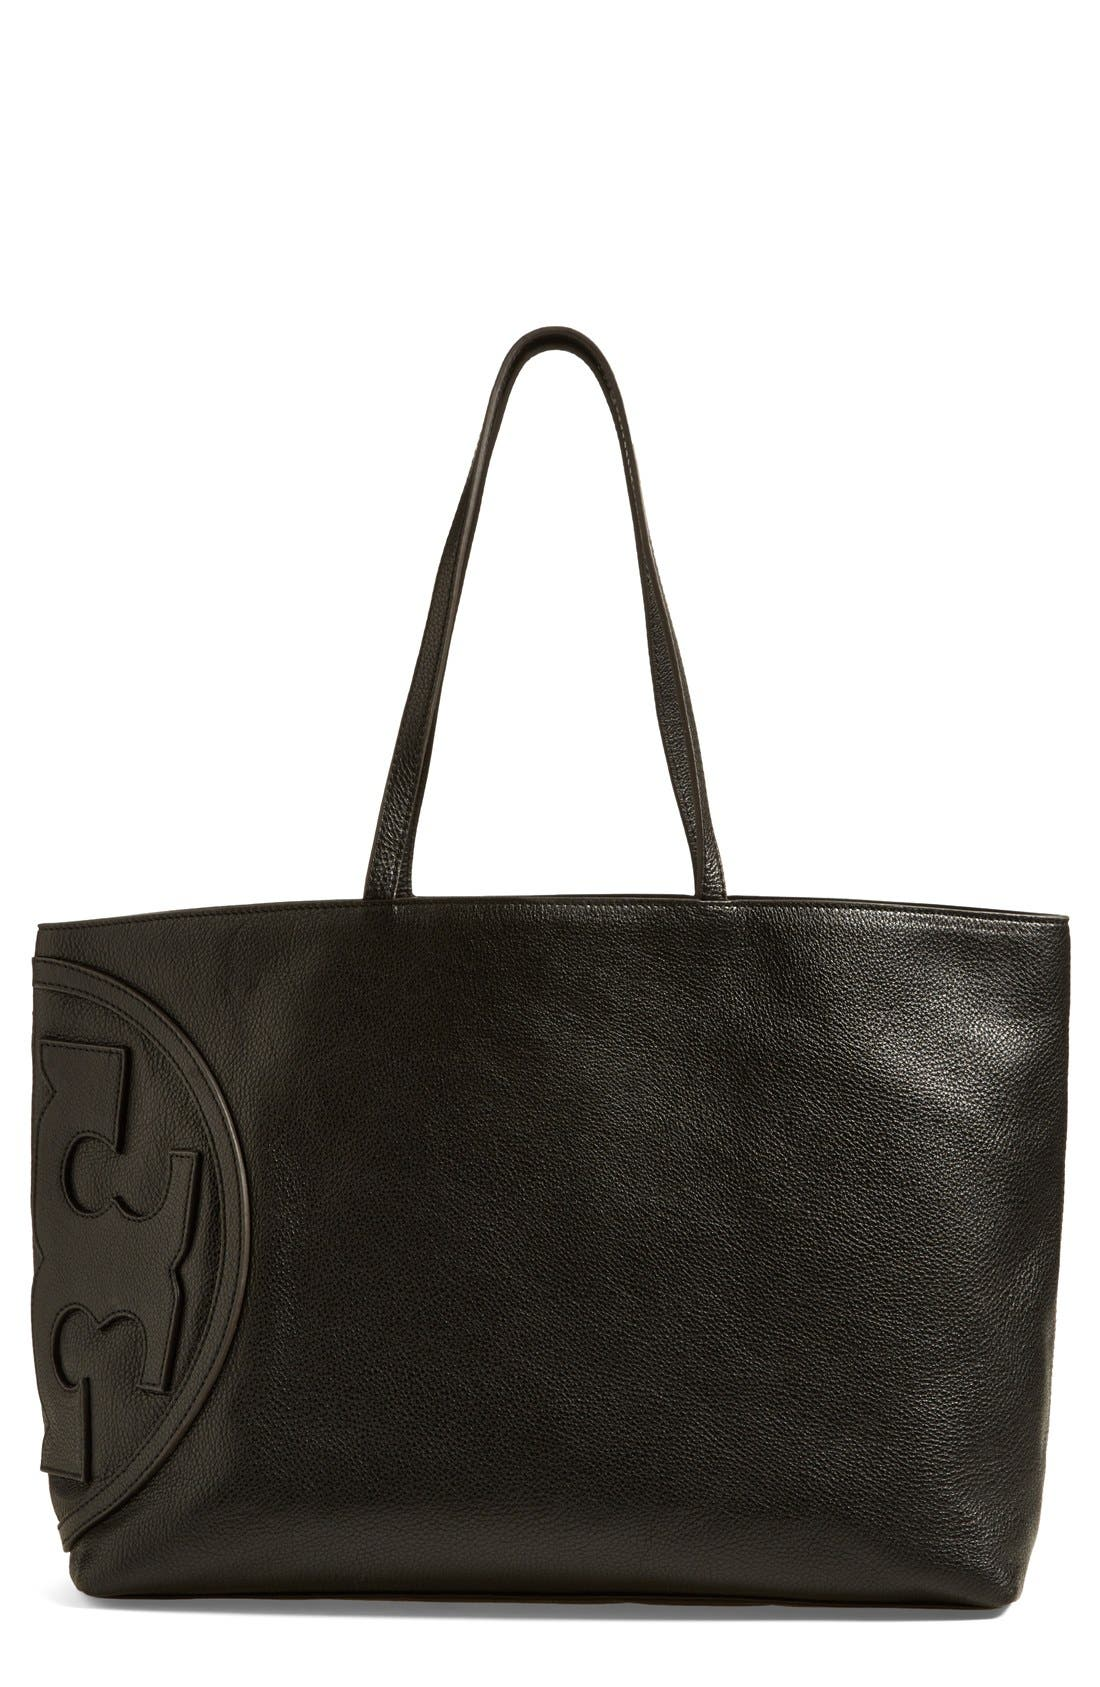 'All T' East/West Tote,                             Main thumbnail 1, color,                             001